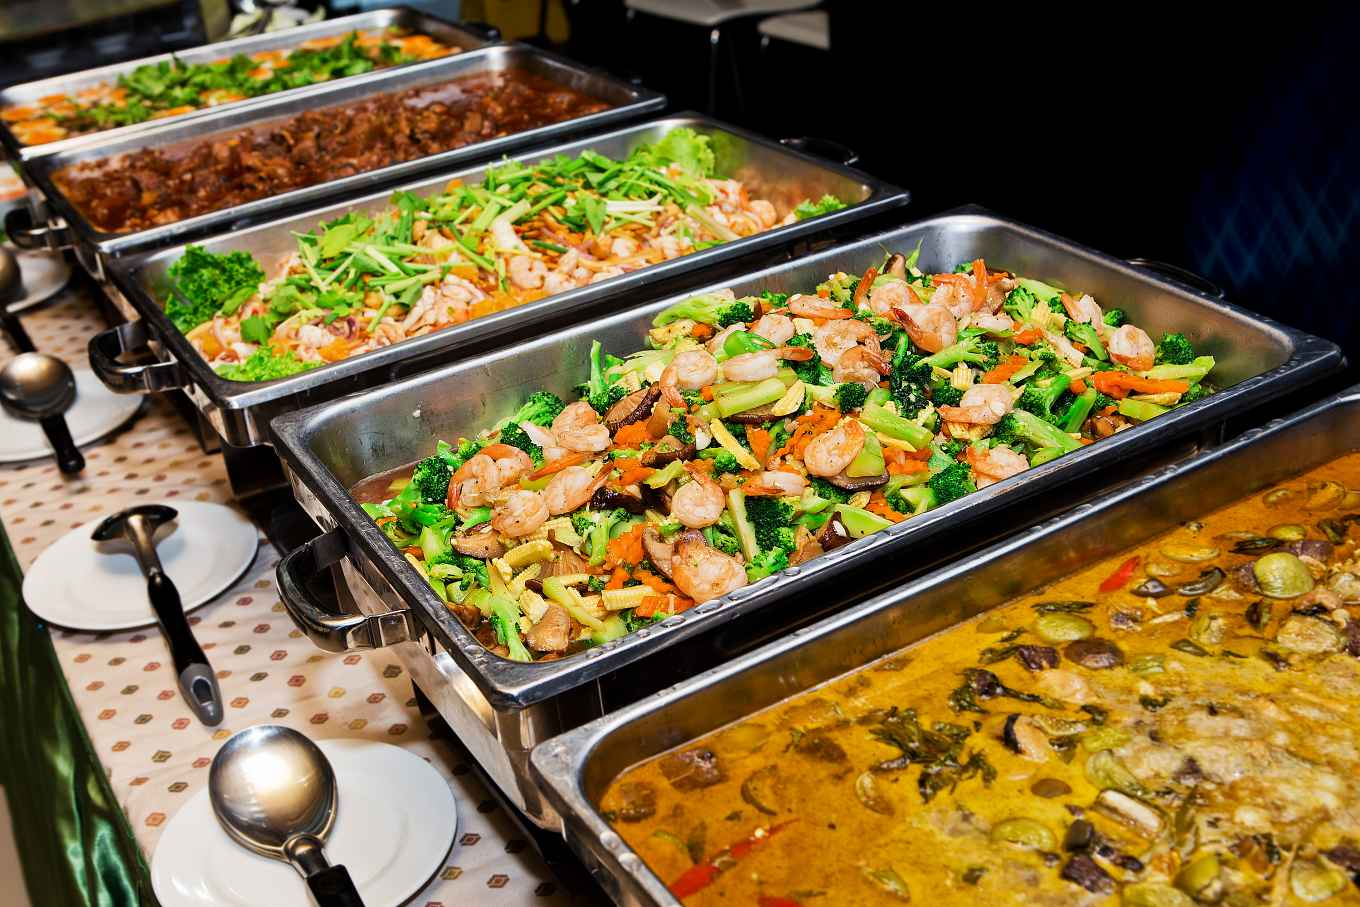 Tips for Healthier Eating at Chinese American Buffets